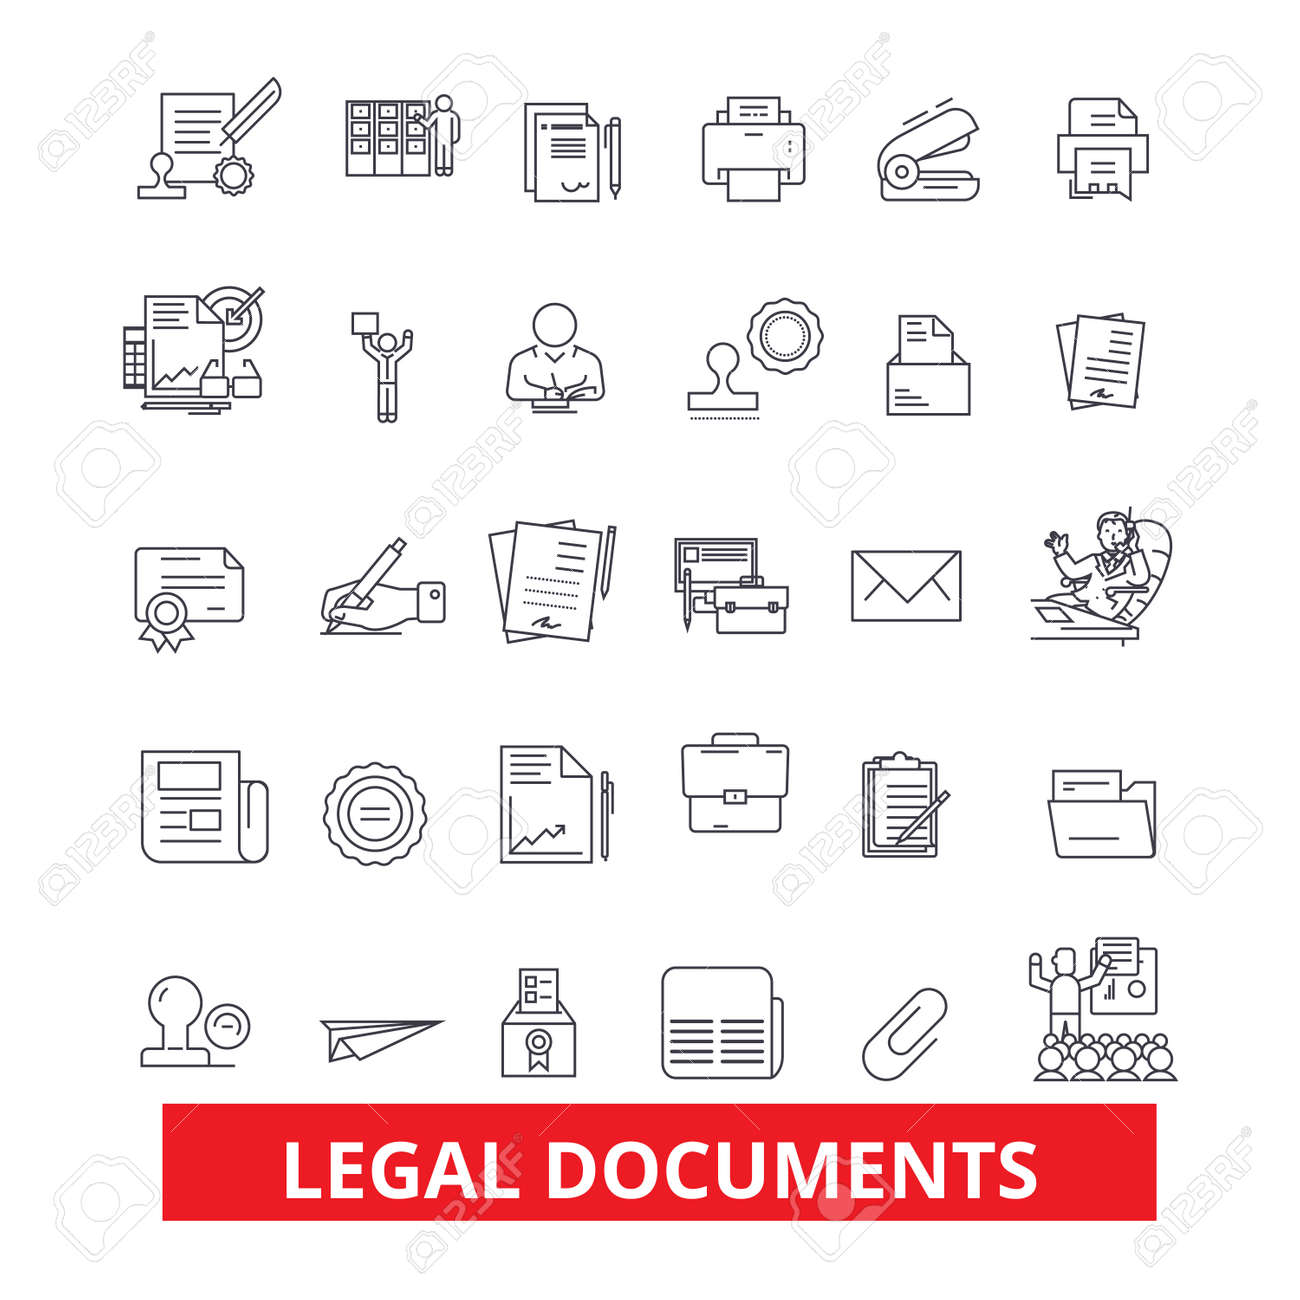 legal documents archive deed record papers legal files